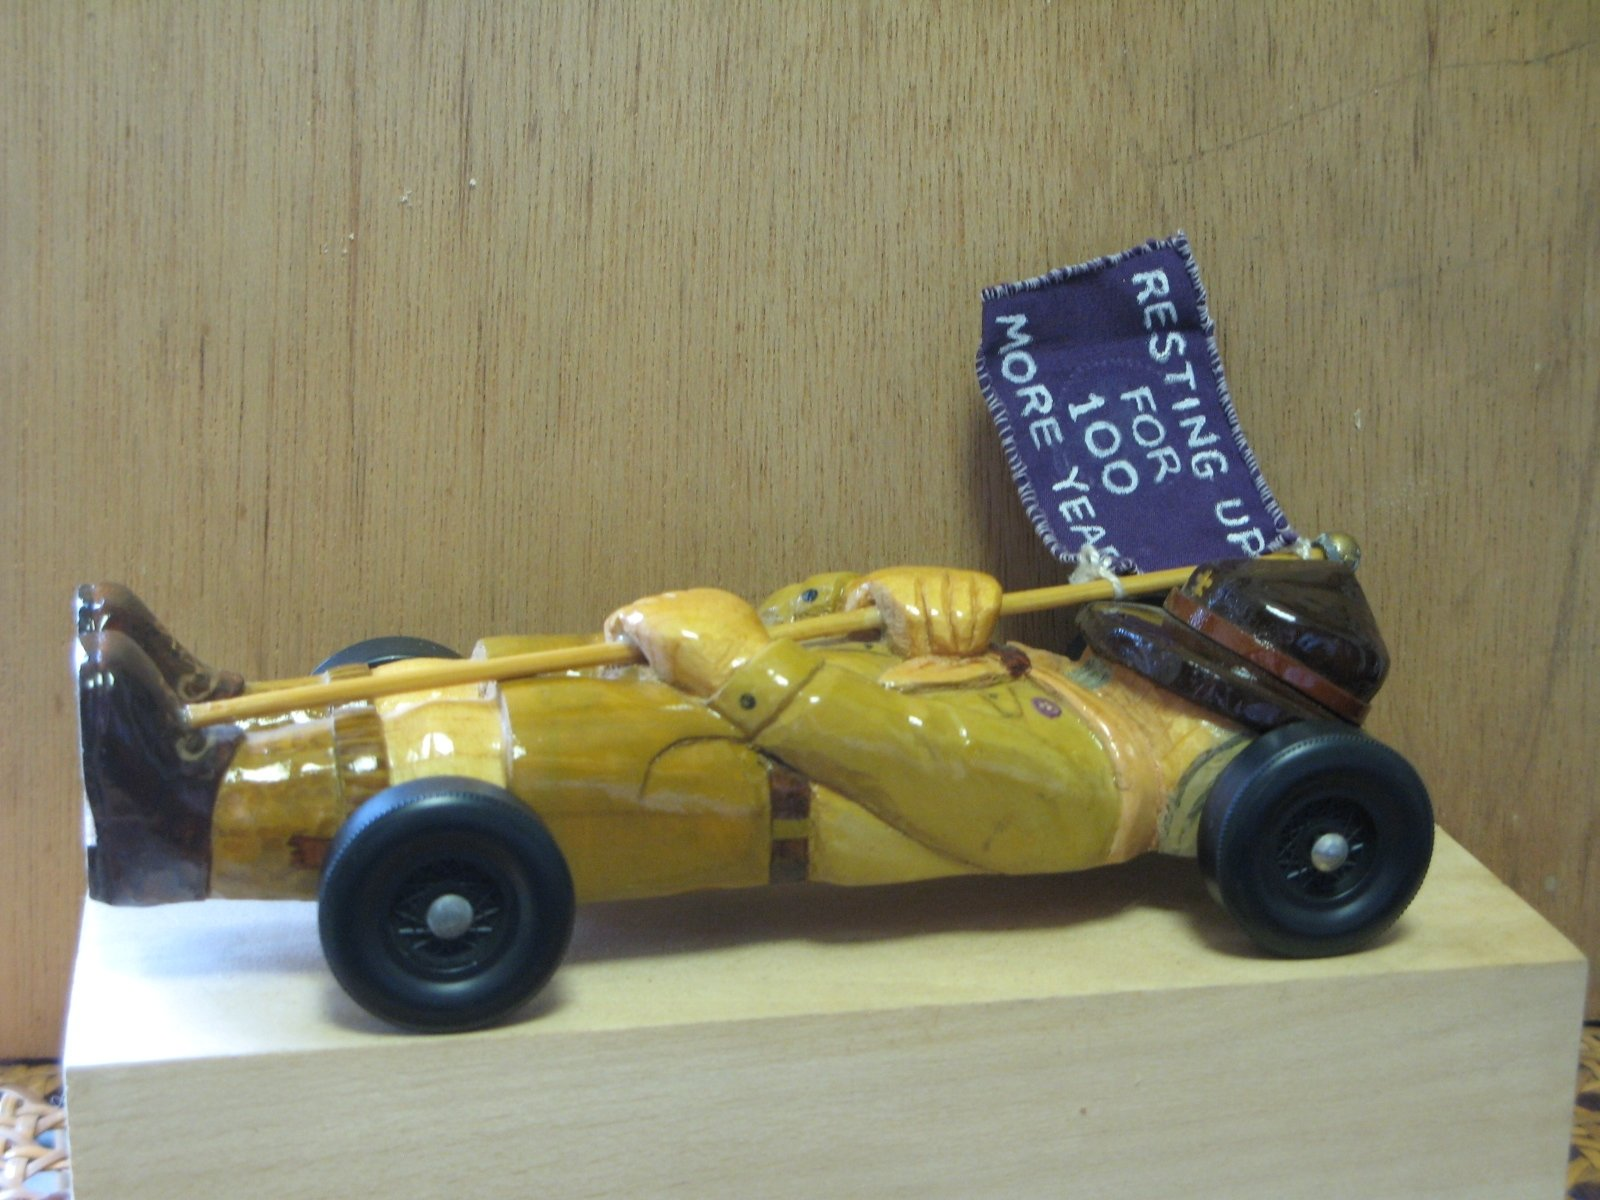 10 Lovely Pine Wood Derby Car Ideas a whittle scouting still more pinewood derby cars 2020